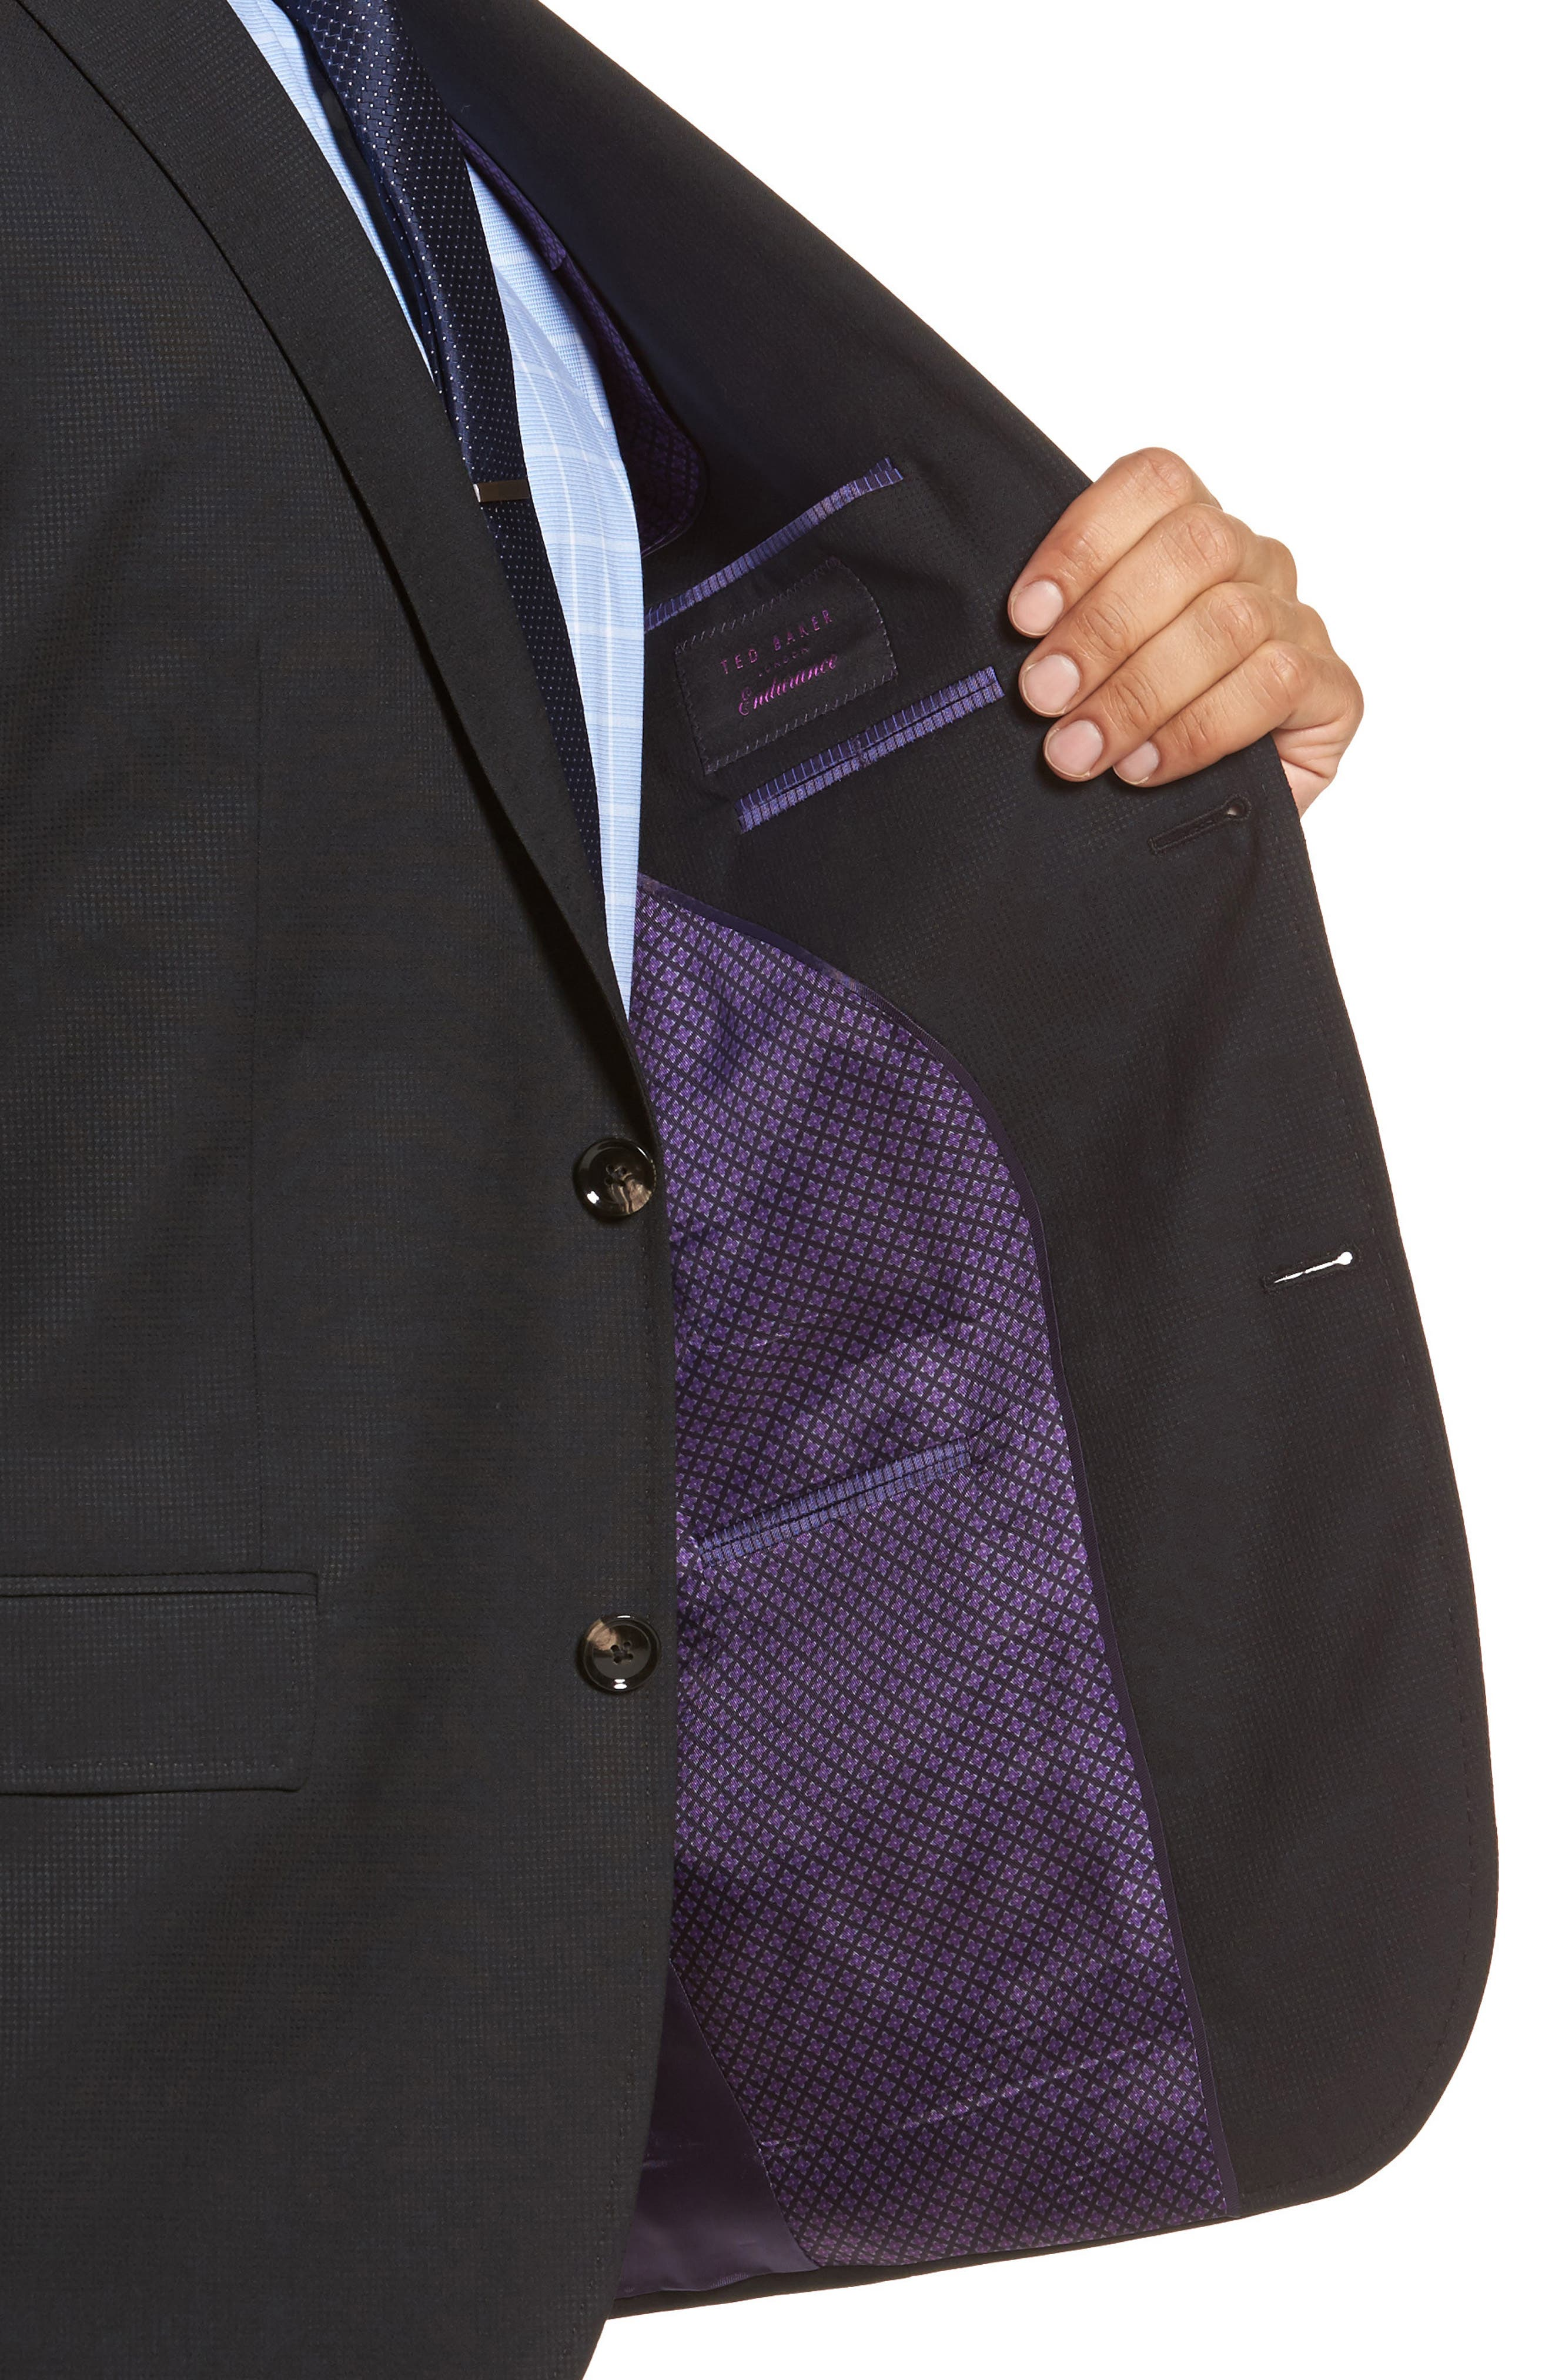 Roger Extra Slim Fit Solid Wool Suit,                             Alternate thumbnail 4, color,                             Black